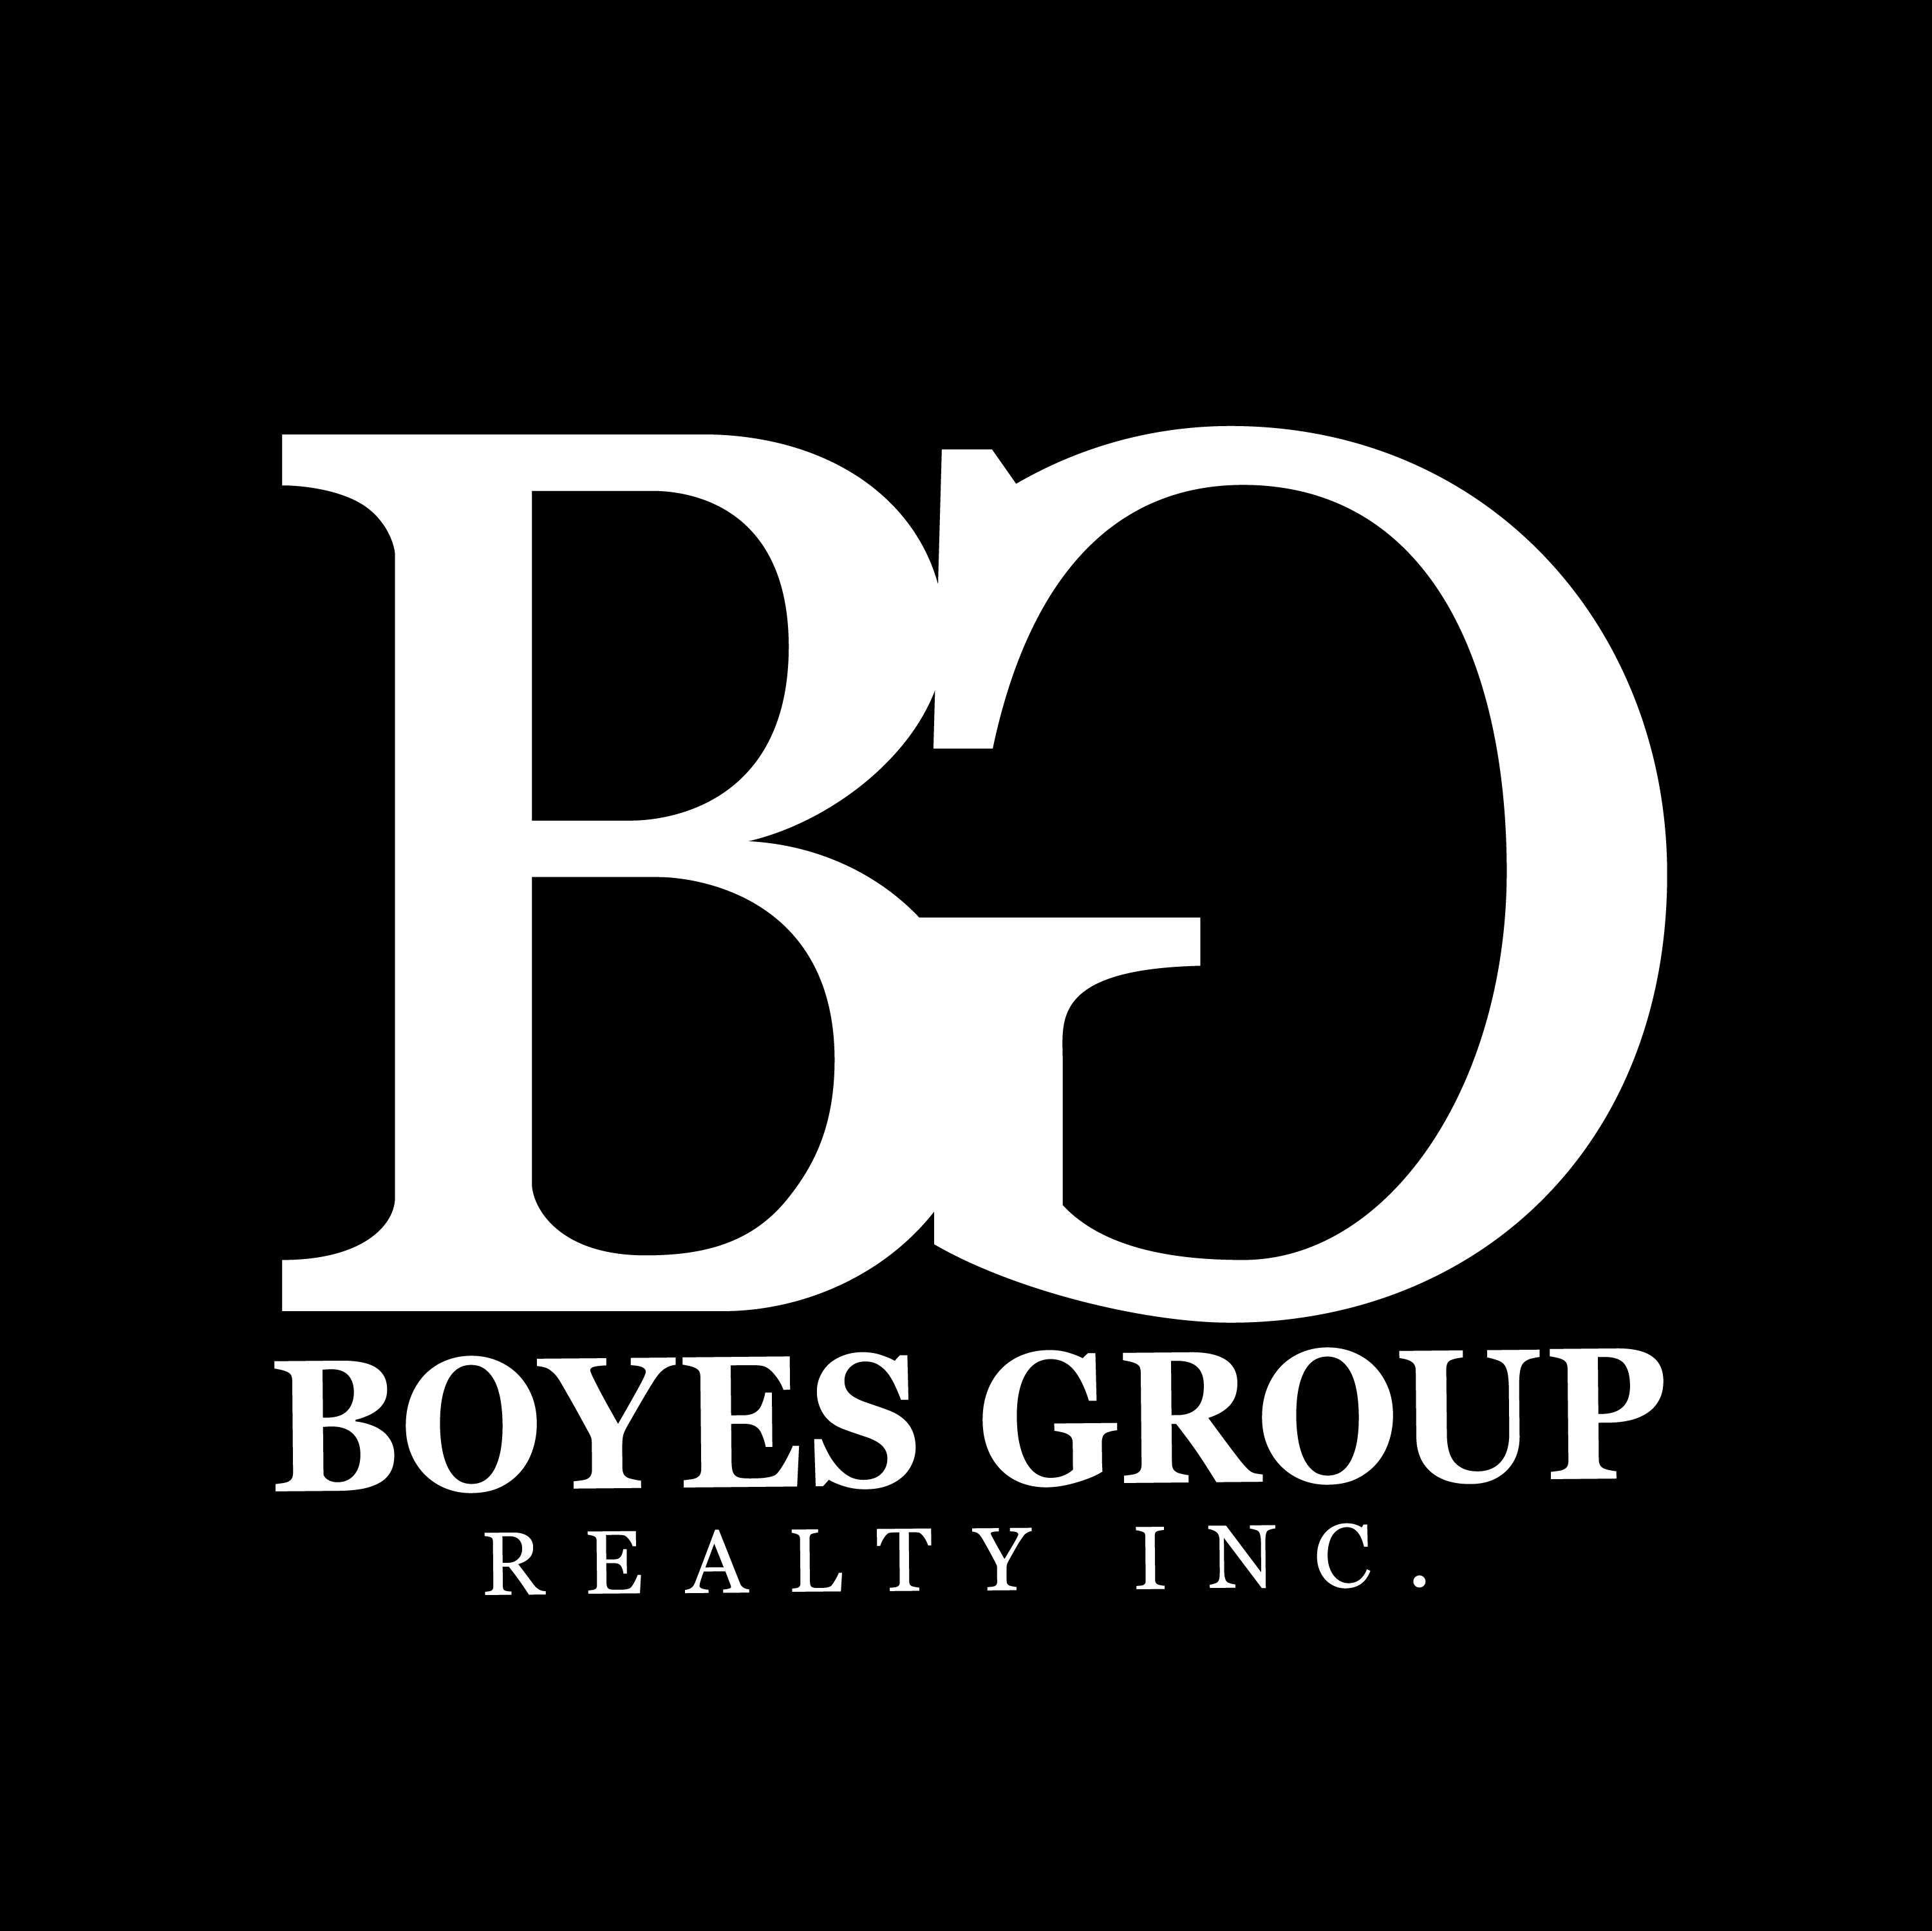 Boyes Group Realty Inc.